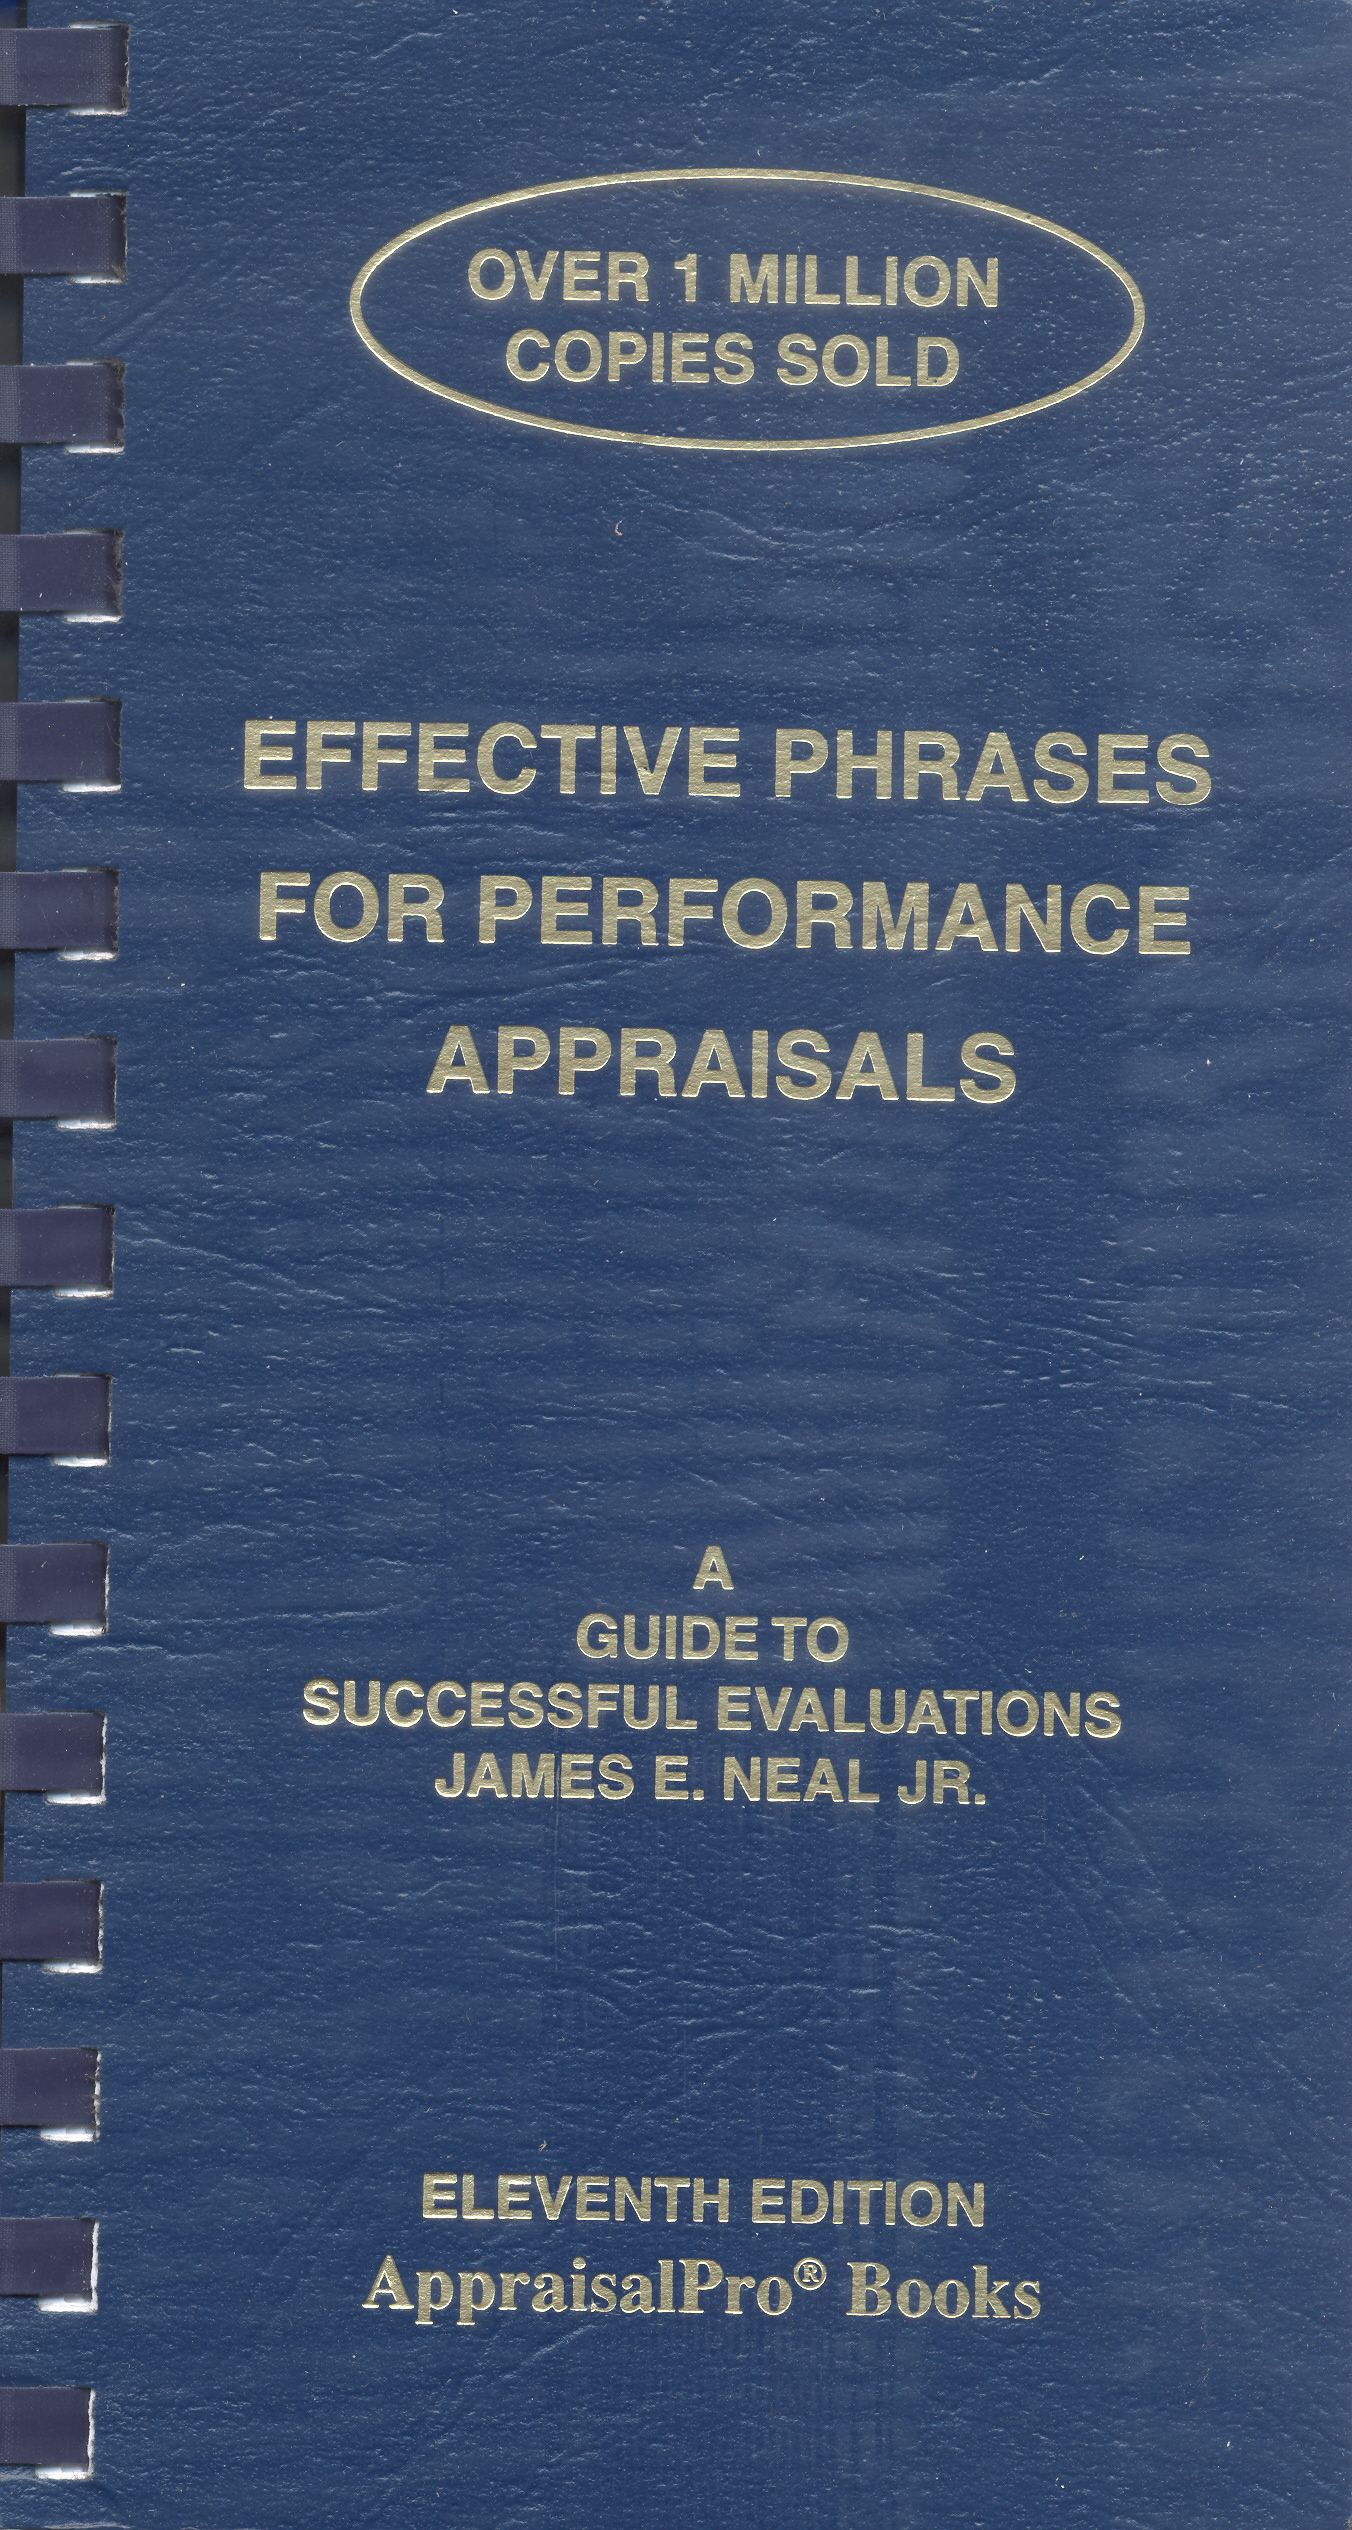 how effectively performance appraisal meets the With reference to different types of performance appraisal, discuss how effectively performance appraisal meets the needs of the employer and the employee - how effectively performance appraisal meets the needs of the employer and the employee introduction.